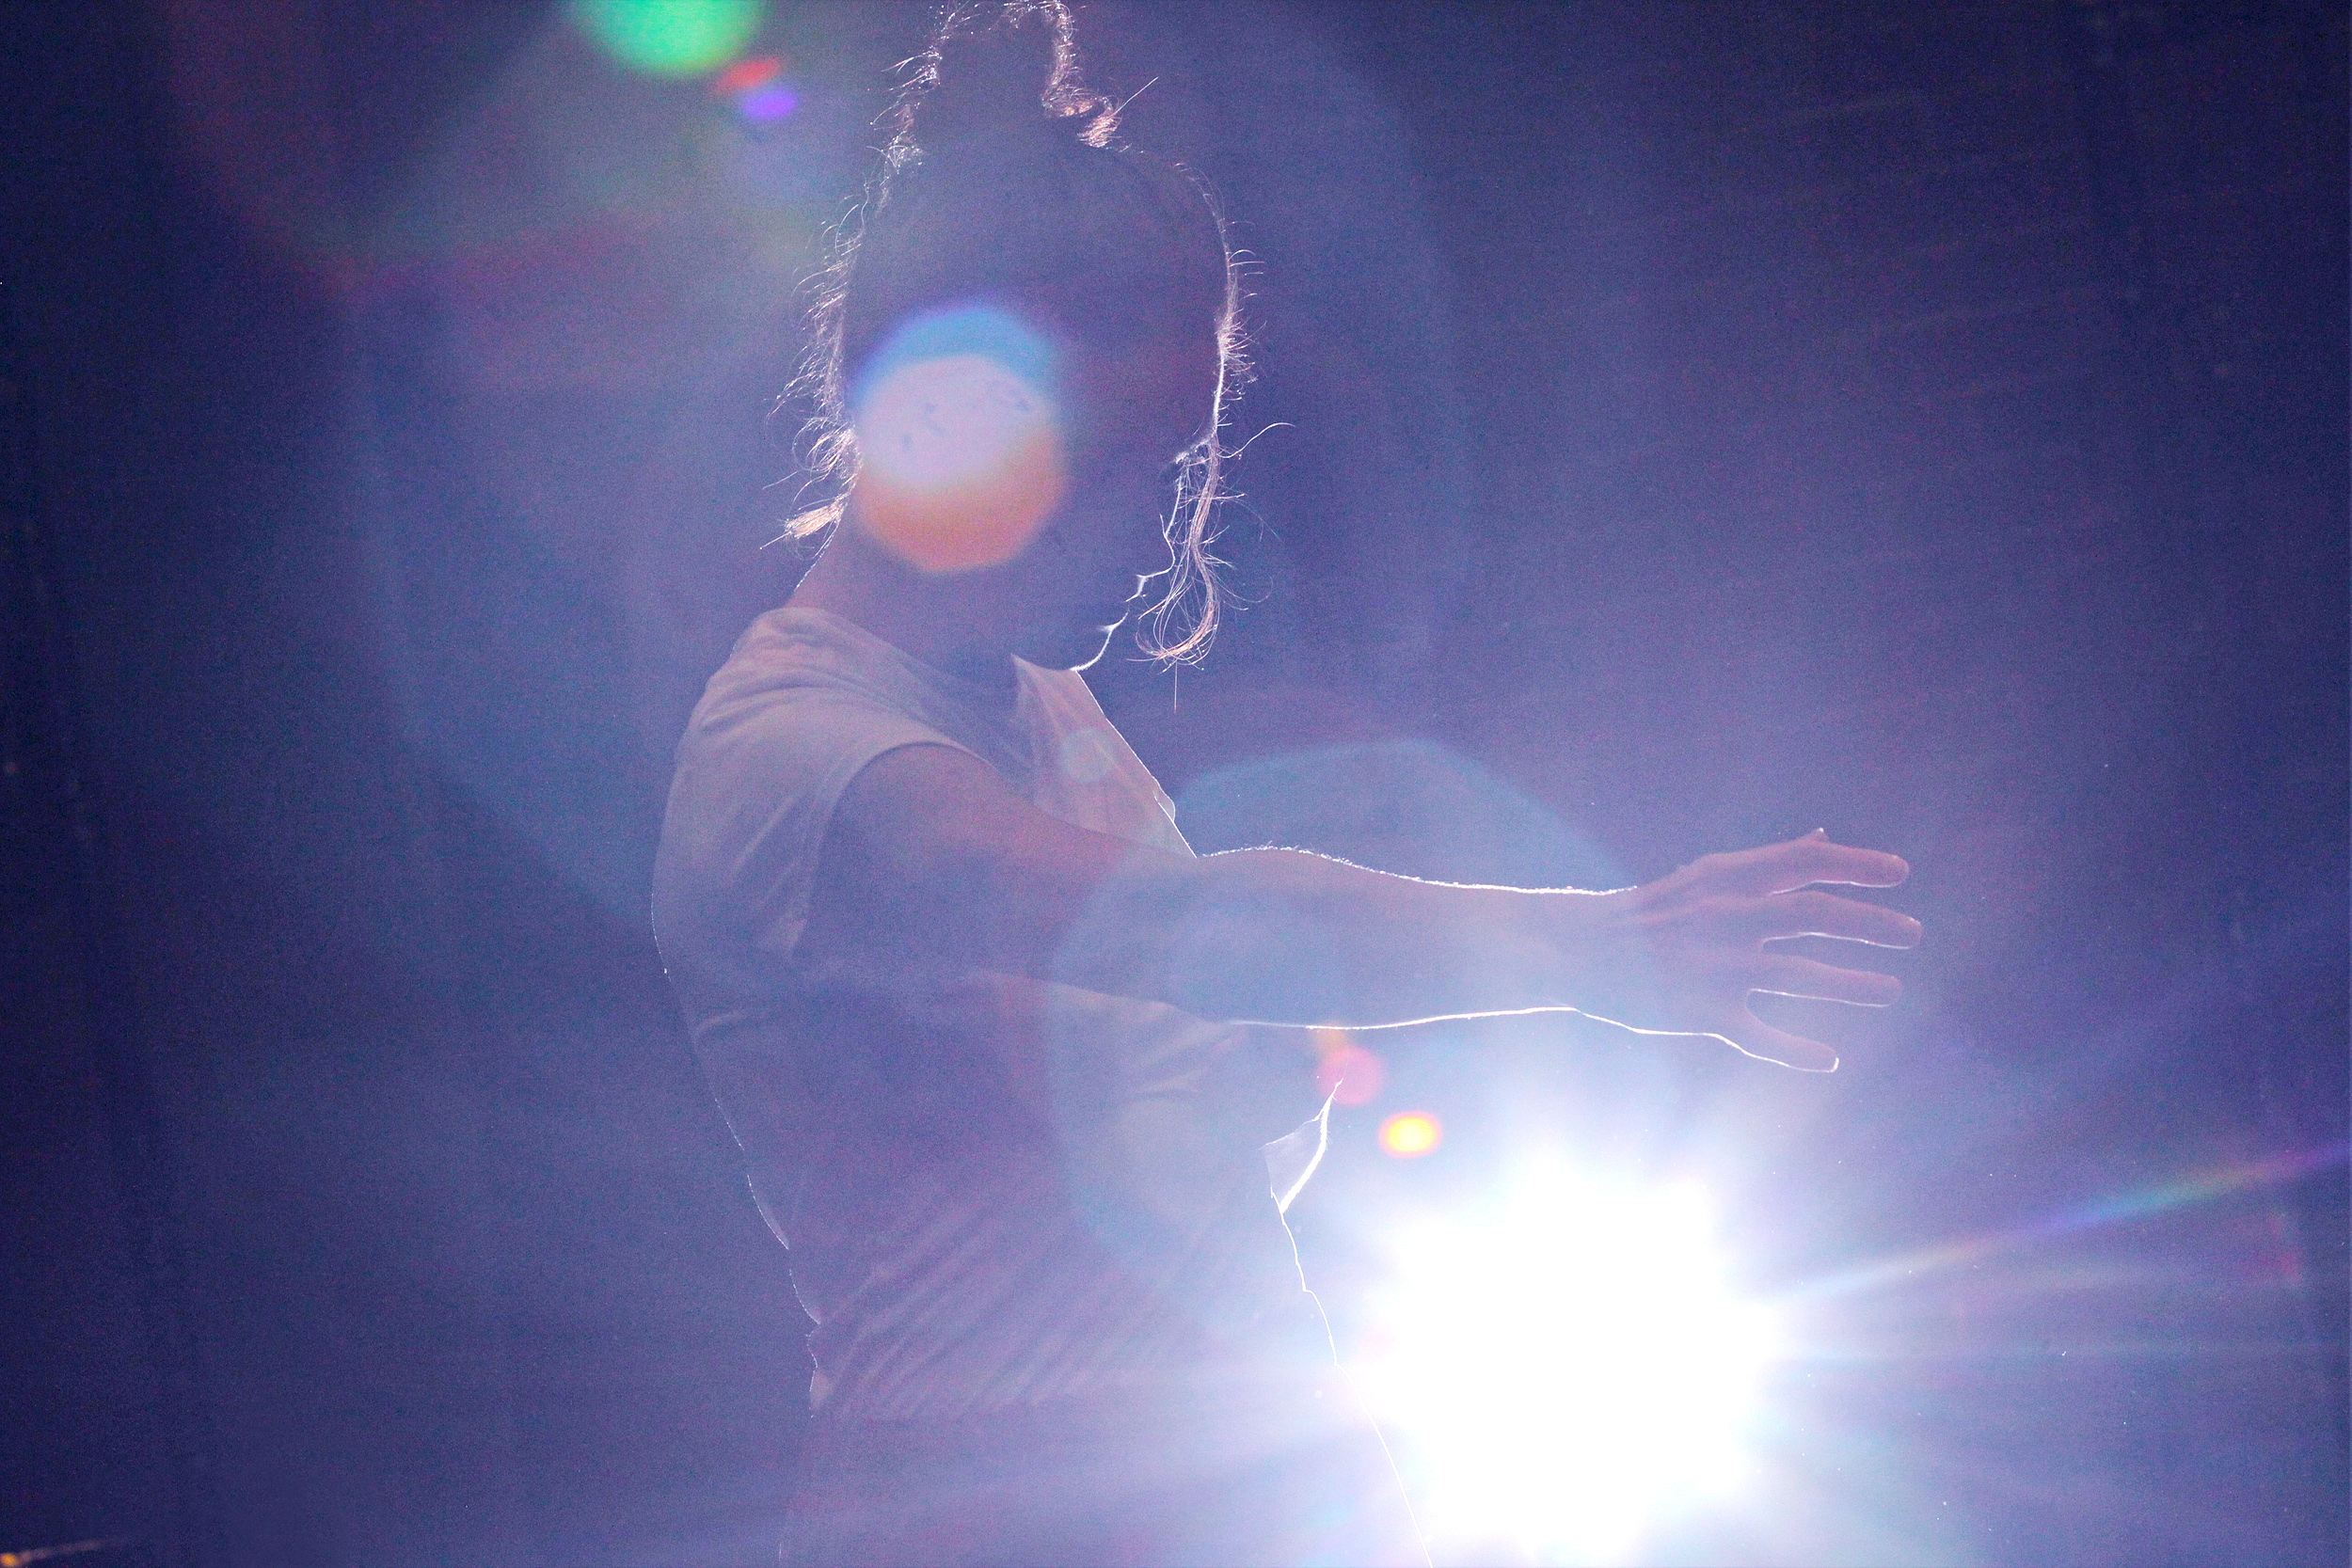 A performer dancing on stage. They are turned to the left, stretching out their right arm. There is a spotlight shining into the camera from behind them.